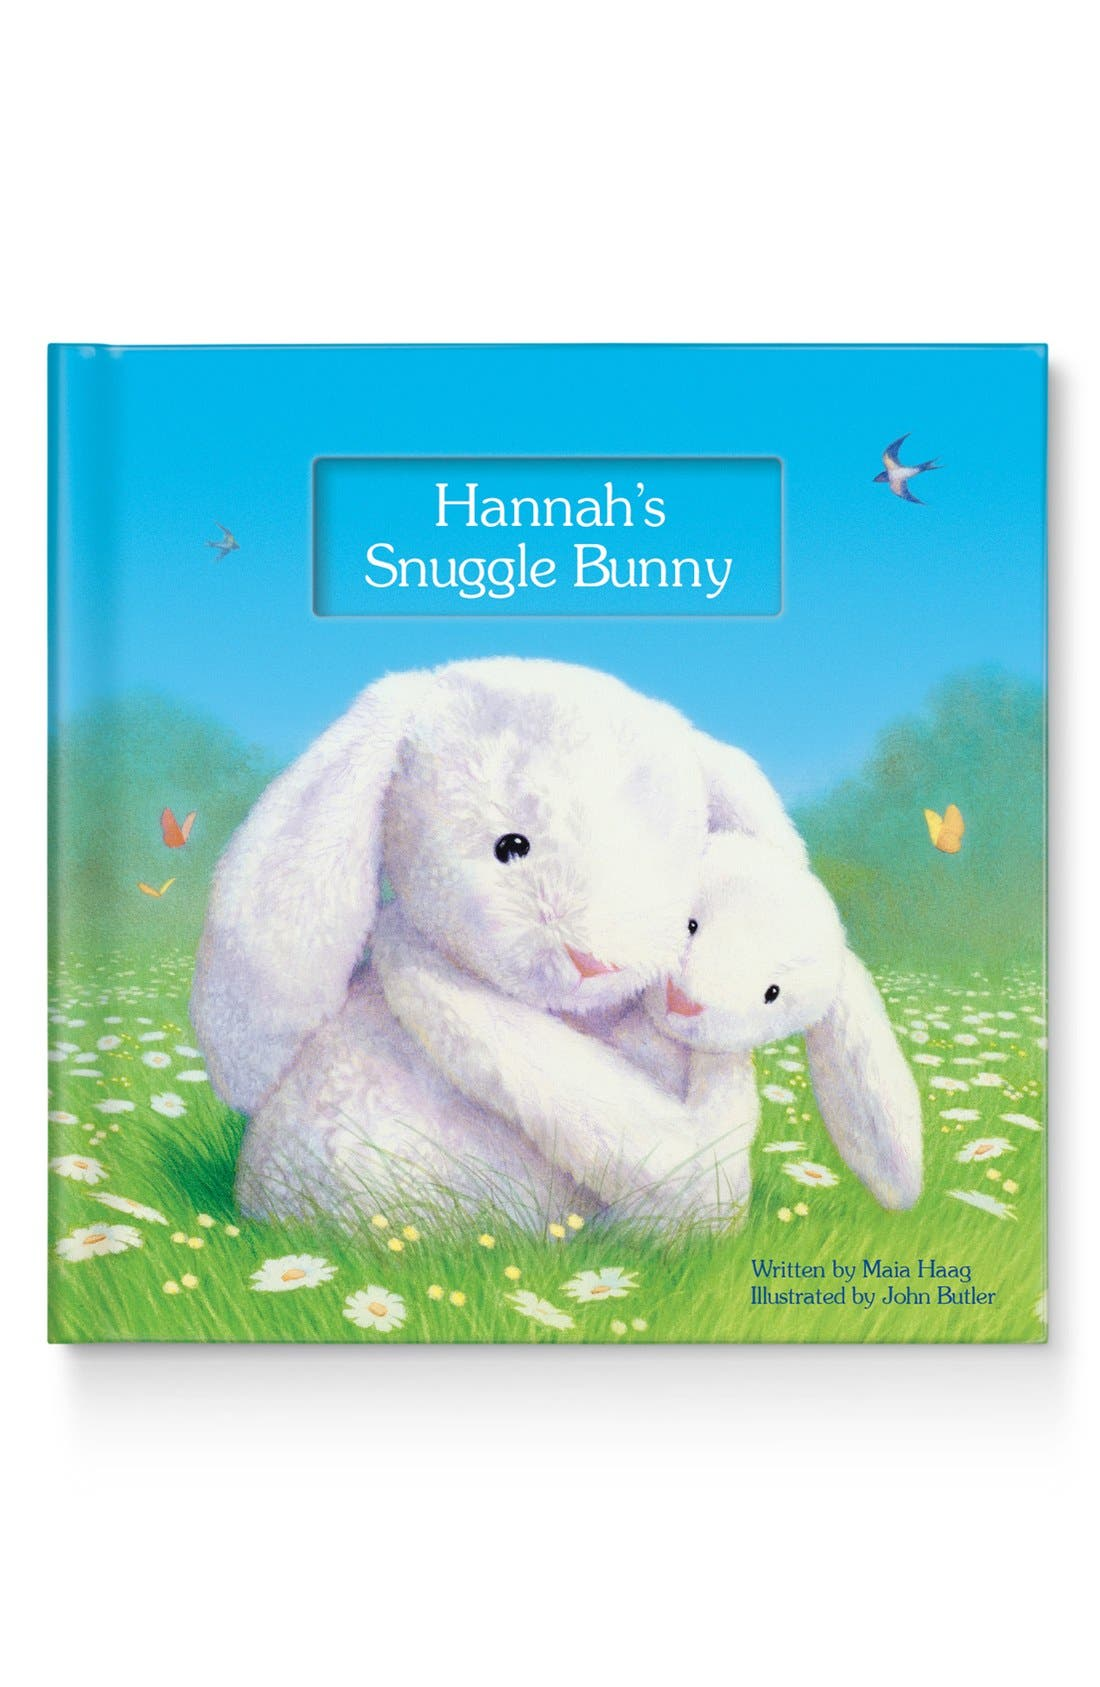 'My Snuggle Bunny' Personalized Book